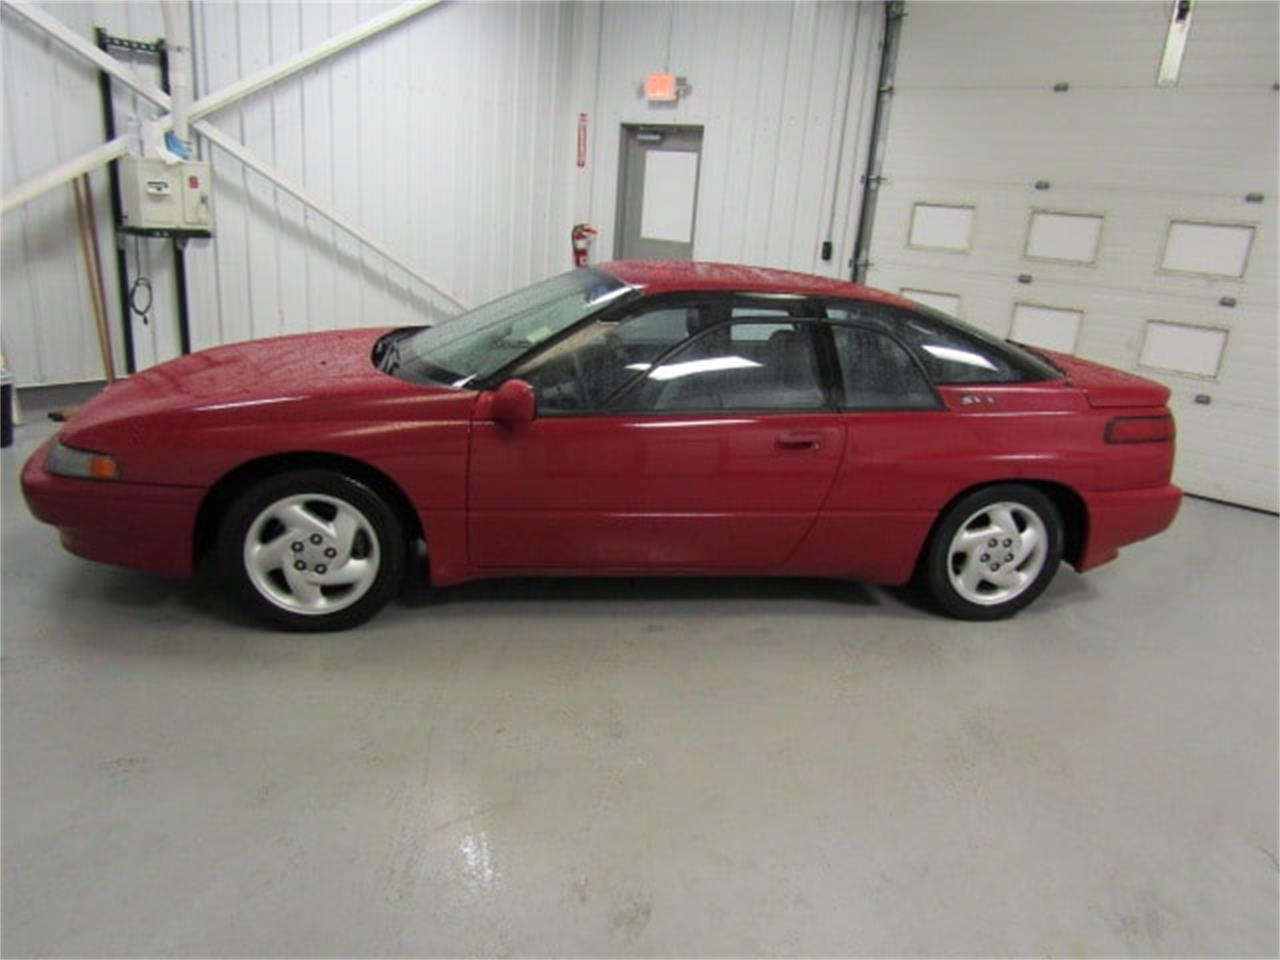 Large Picture of 1994 Subaru SVX located in Virginia - $6,900.00 Offered by Duncan Imports & Classic Cars - LN5Q